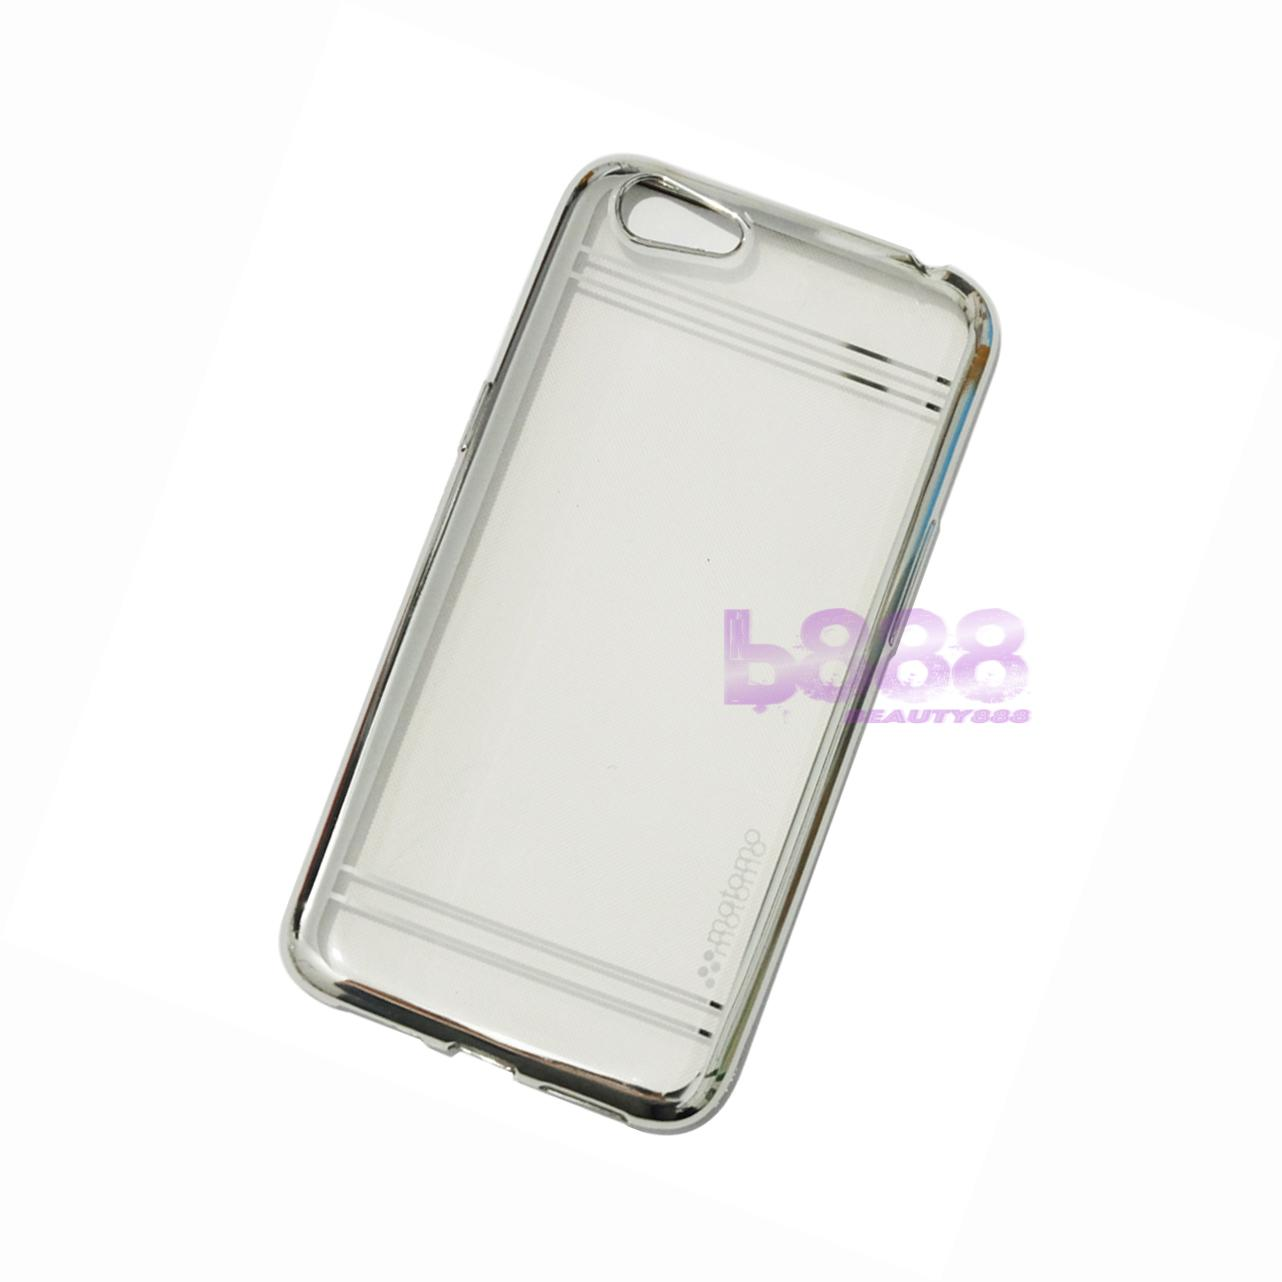 ... Motomo Chrome Case Oppo A71 Shining Chrome / Ultrahin Oppo A71 List Chrome Jelly Case /